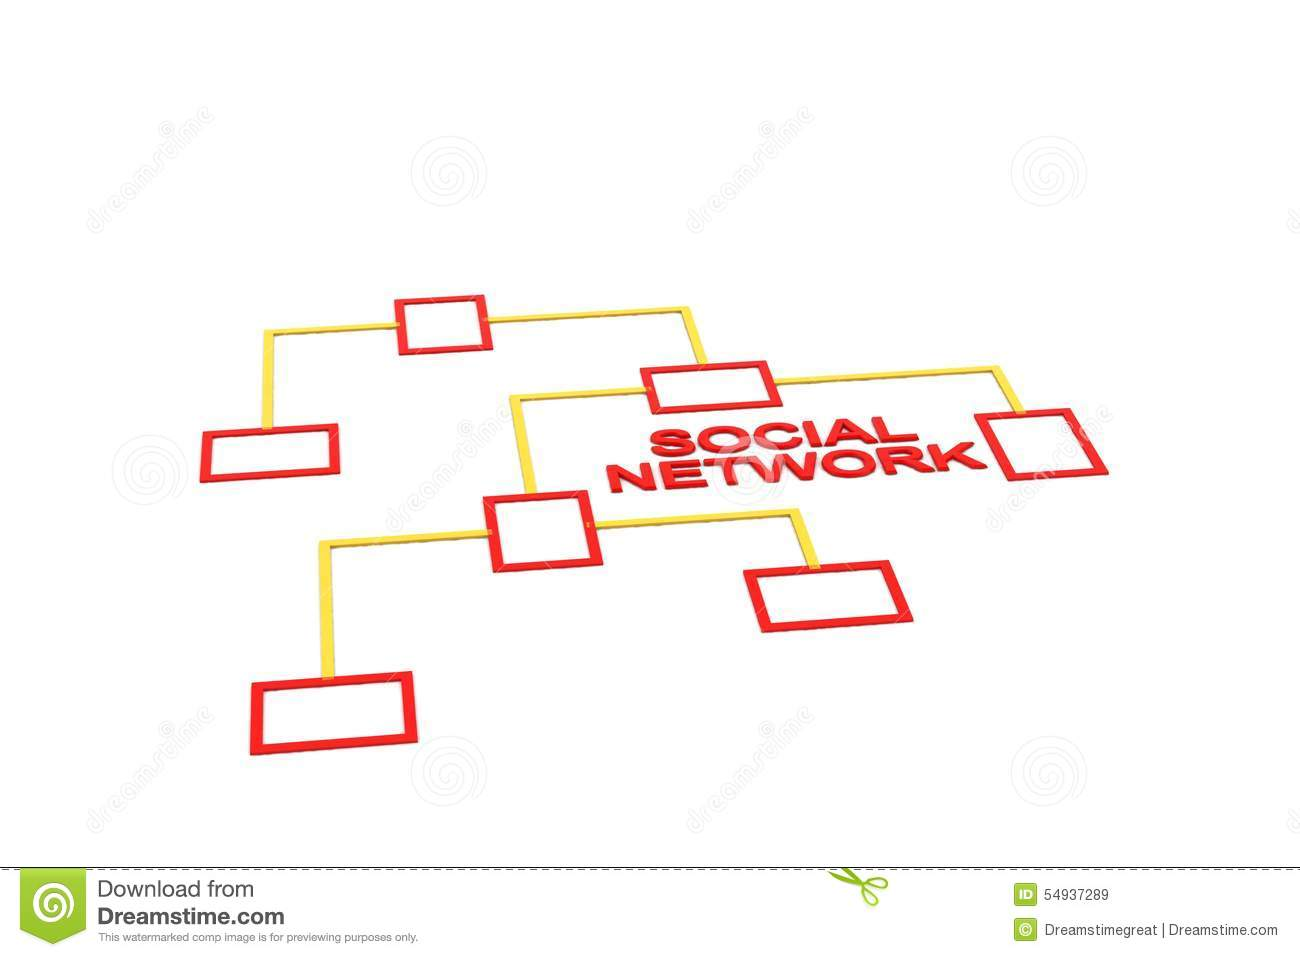 Network connection diagram stock illustration. Illustration of ... on network storage diagram, security network user diagram, basic network diagram, network connection template, network connection chart, local area network diagram, network performance diagram, network home diagram, network computer diagram, network connection web, network connection blueprint, networking wiring diagram, network connection animation, network service diagram, network connection install, network architecture diagram, network topology diagram, network diagram examples, corporate network diagram, network host diagram,